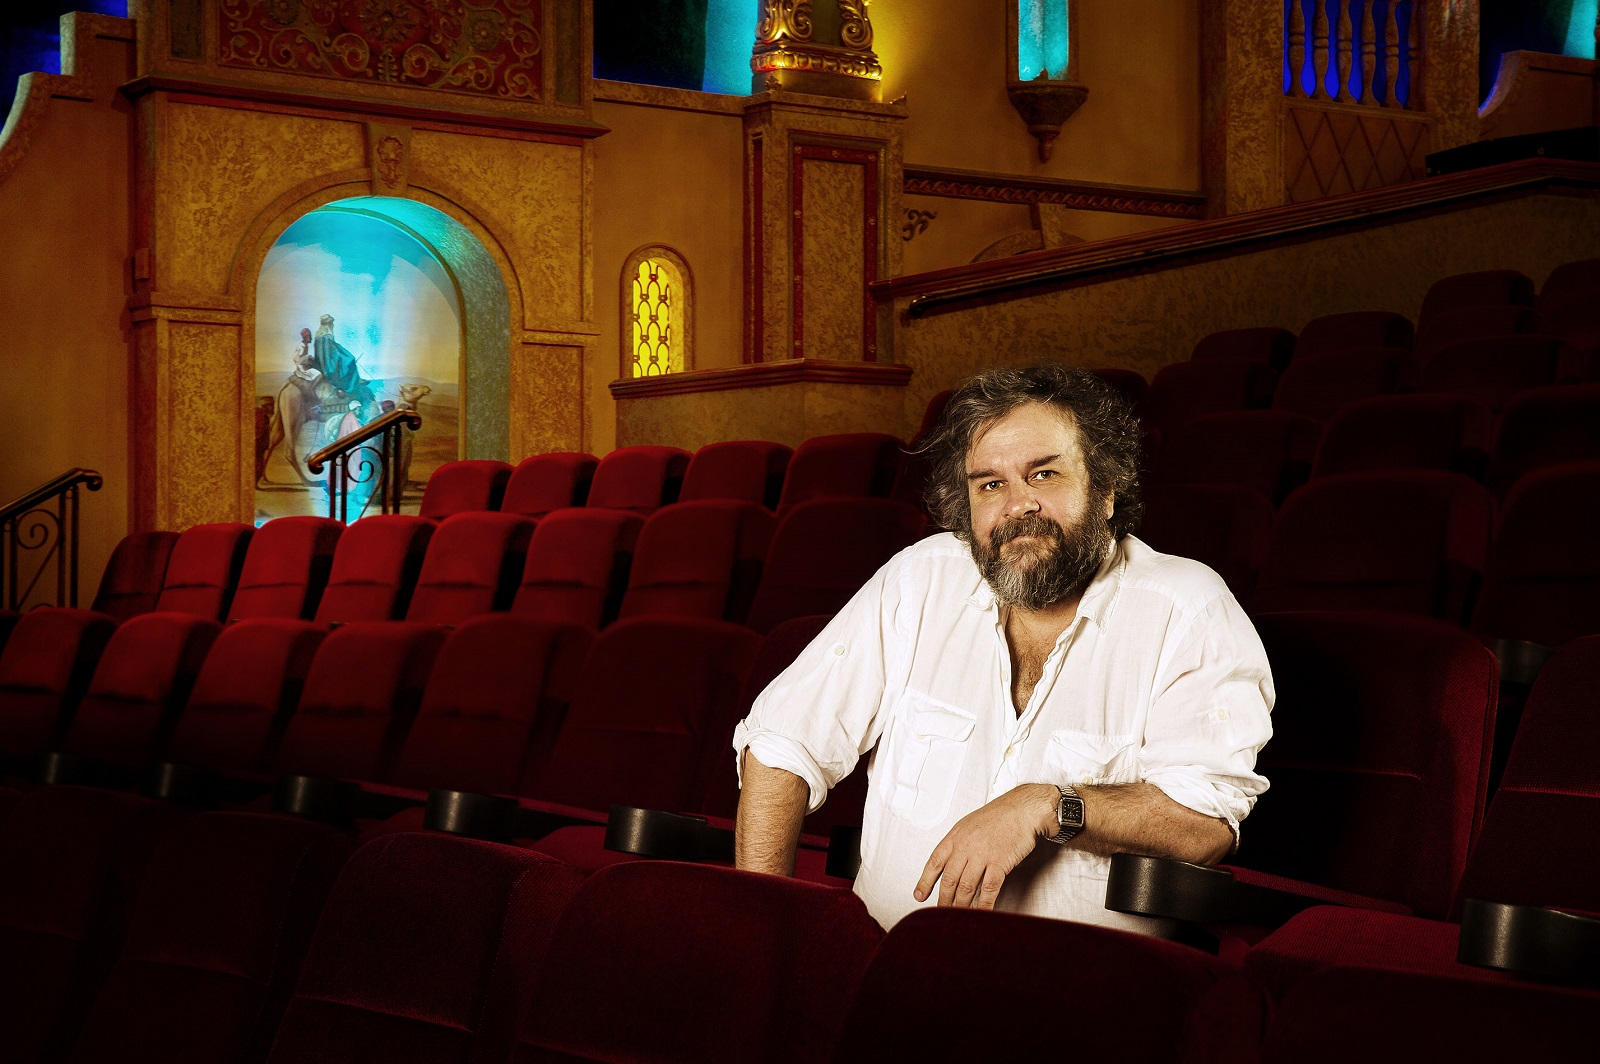 Acclaimed filmmaker Sir Peter Jackson in his private theatre at his filmmaking facilities in Wellington, New Zealand